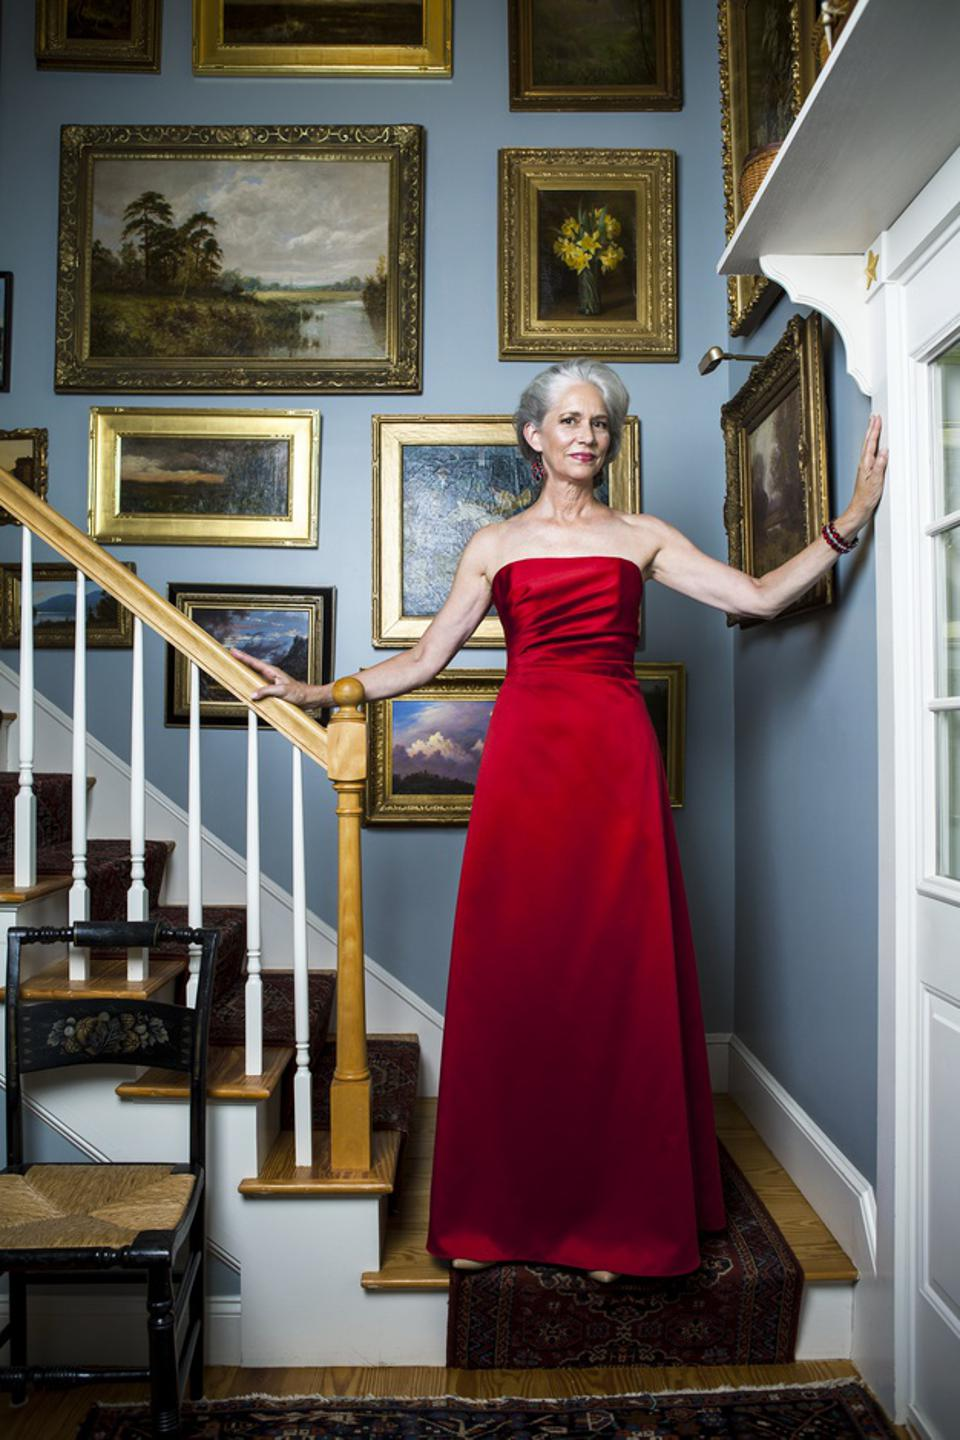 Beautiful woman in her late fifties with silvery gray hair wearing a glamorous red evening dress while standing in a staircase in front of gold-framed oil paintings.